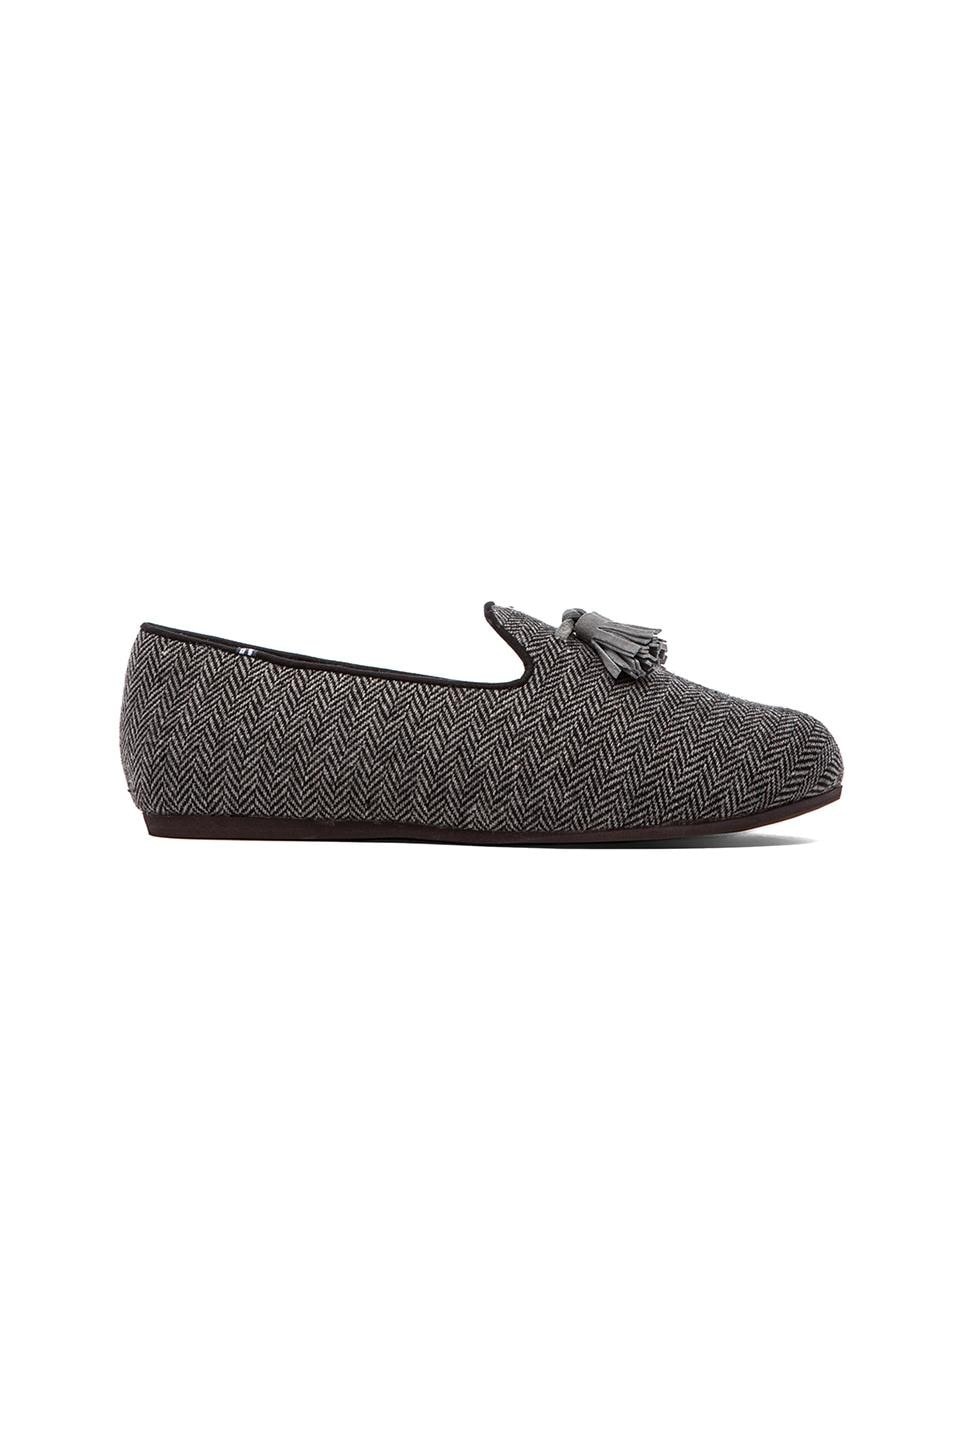 Charles Philip Shanghai Costantino Loafer in Grey Herringbone